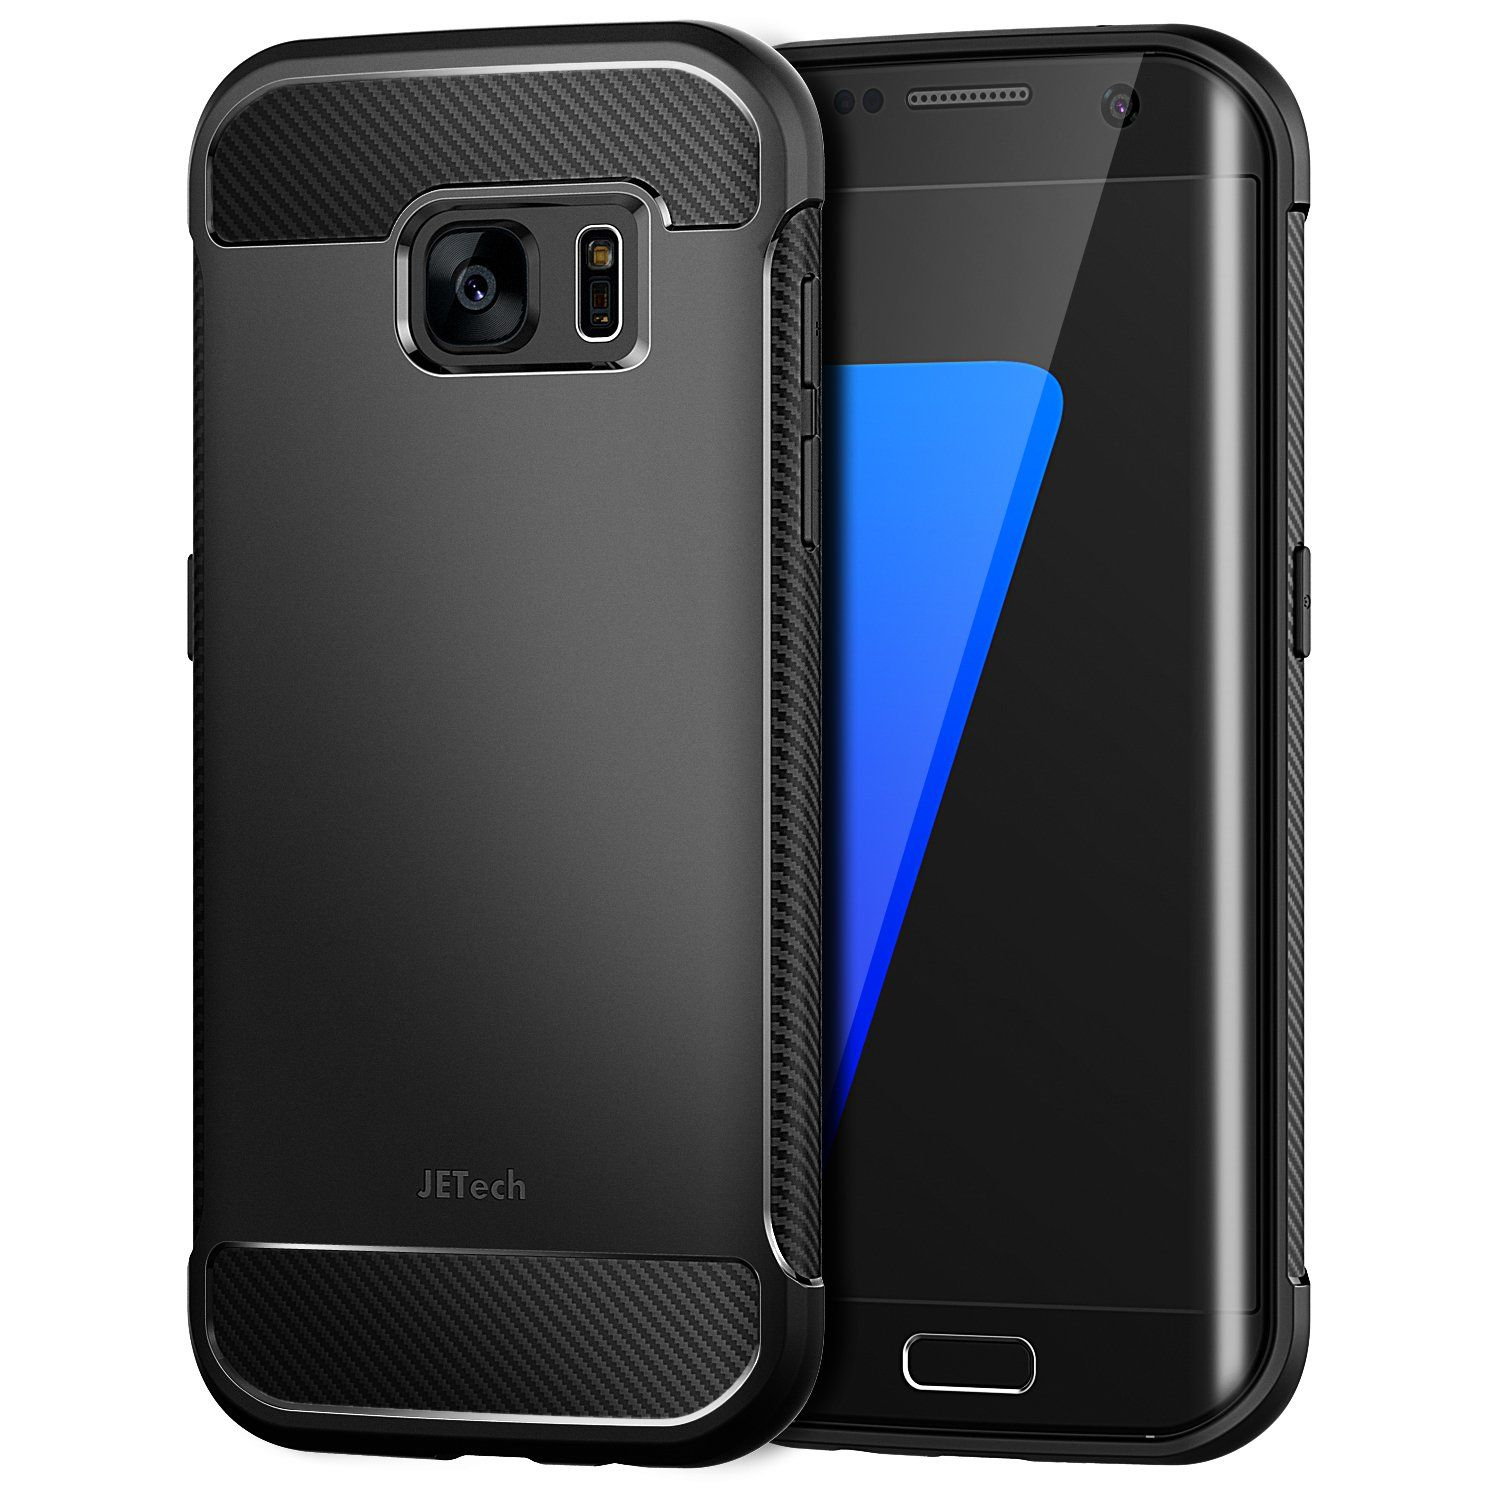 free shipping a1c15 12274 JETech Case for Samsung Galaxy S7 Edge Protective Cover with Shock ...